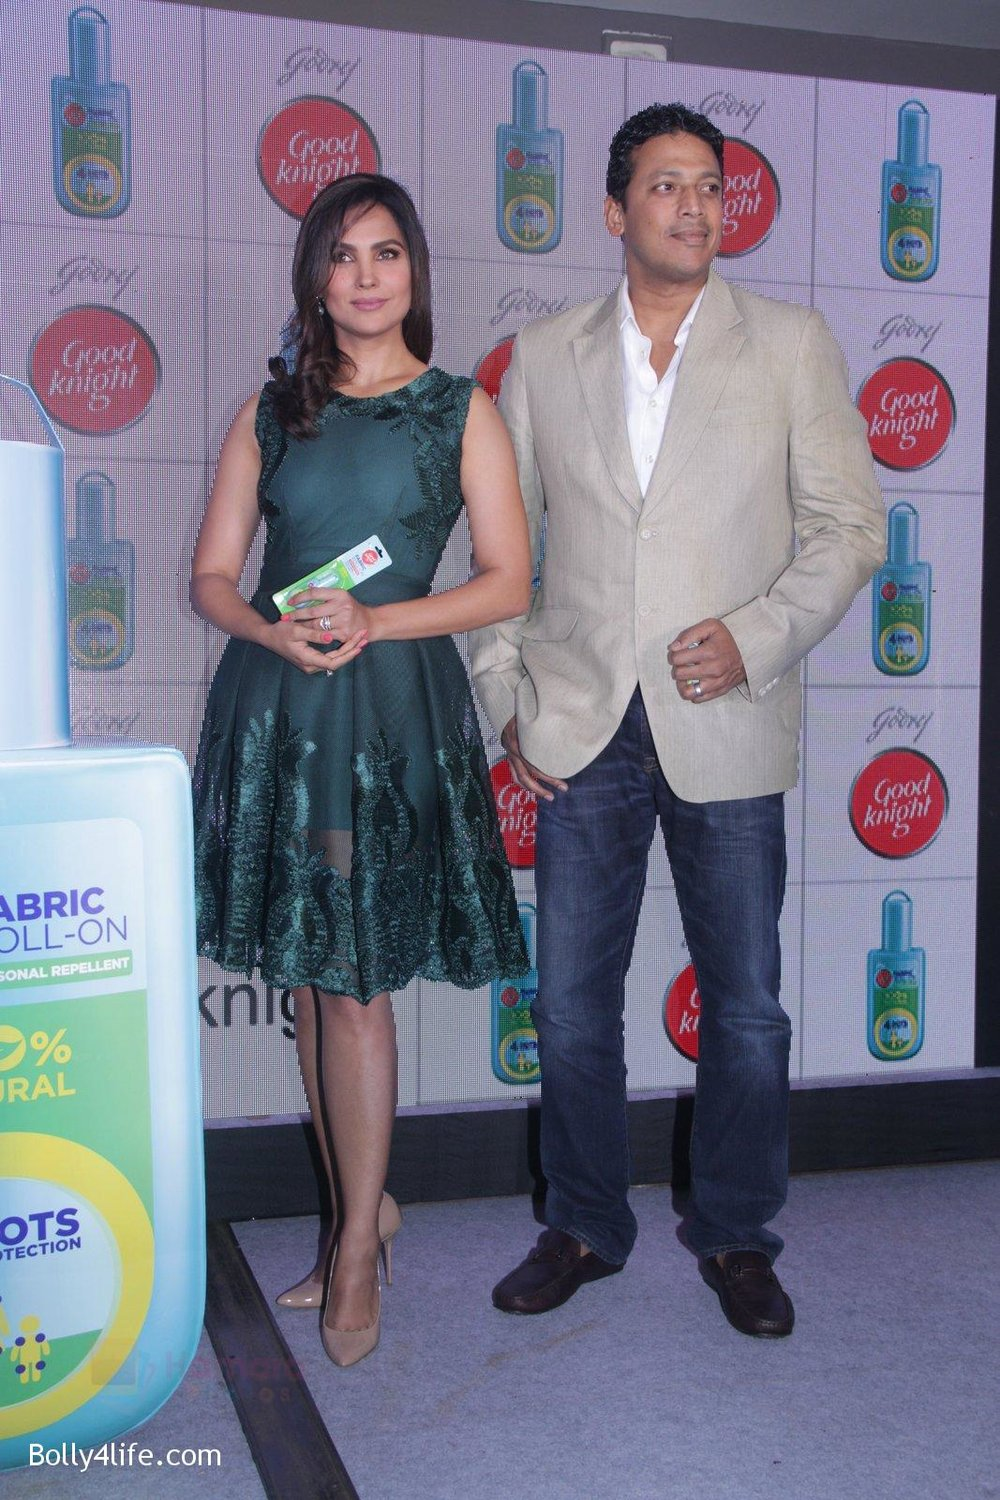 Lara-Dutta-Mahesh-Bhupathi-promotes-Good-Night-on-29th-Sept-2016-47.jpg